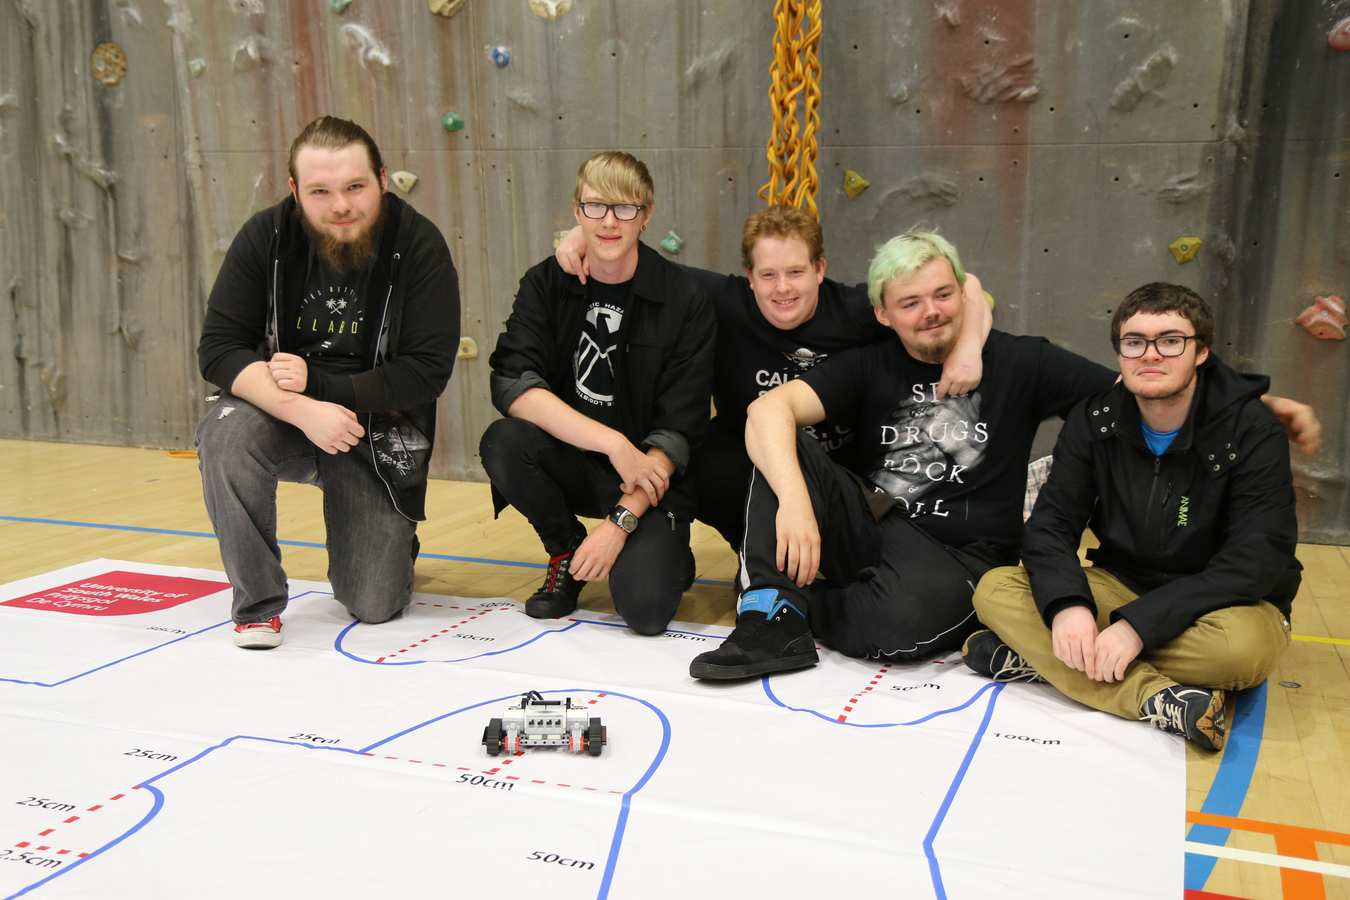 Connor Gibbs, 19, Gethin Callaghan, 19, Butch Renwick, 26, Suonie Jones, 18, and Aaron Phillips, 18, all from Coleg Y Cymoedd's Ystrad Mynach campus, worked on the robot programming challenge.